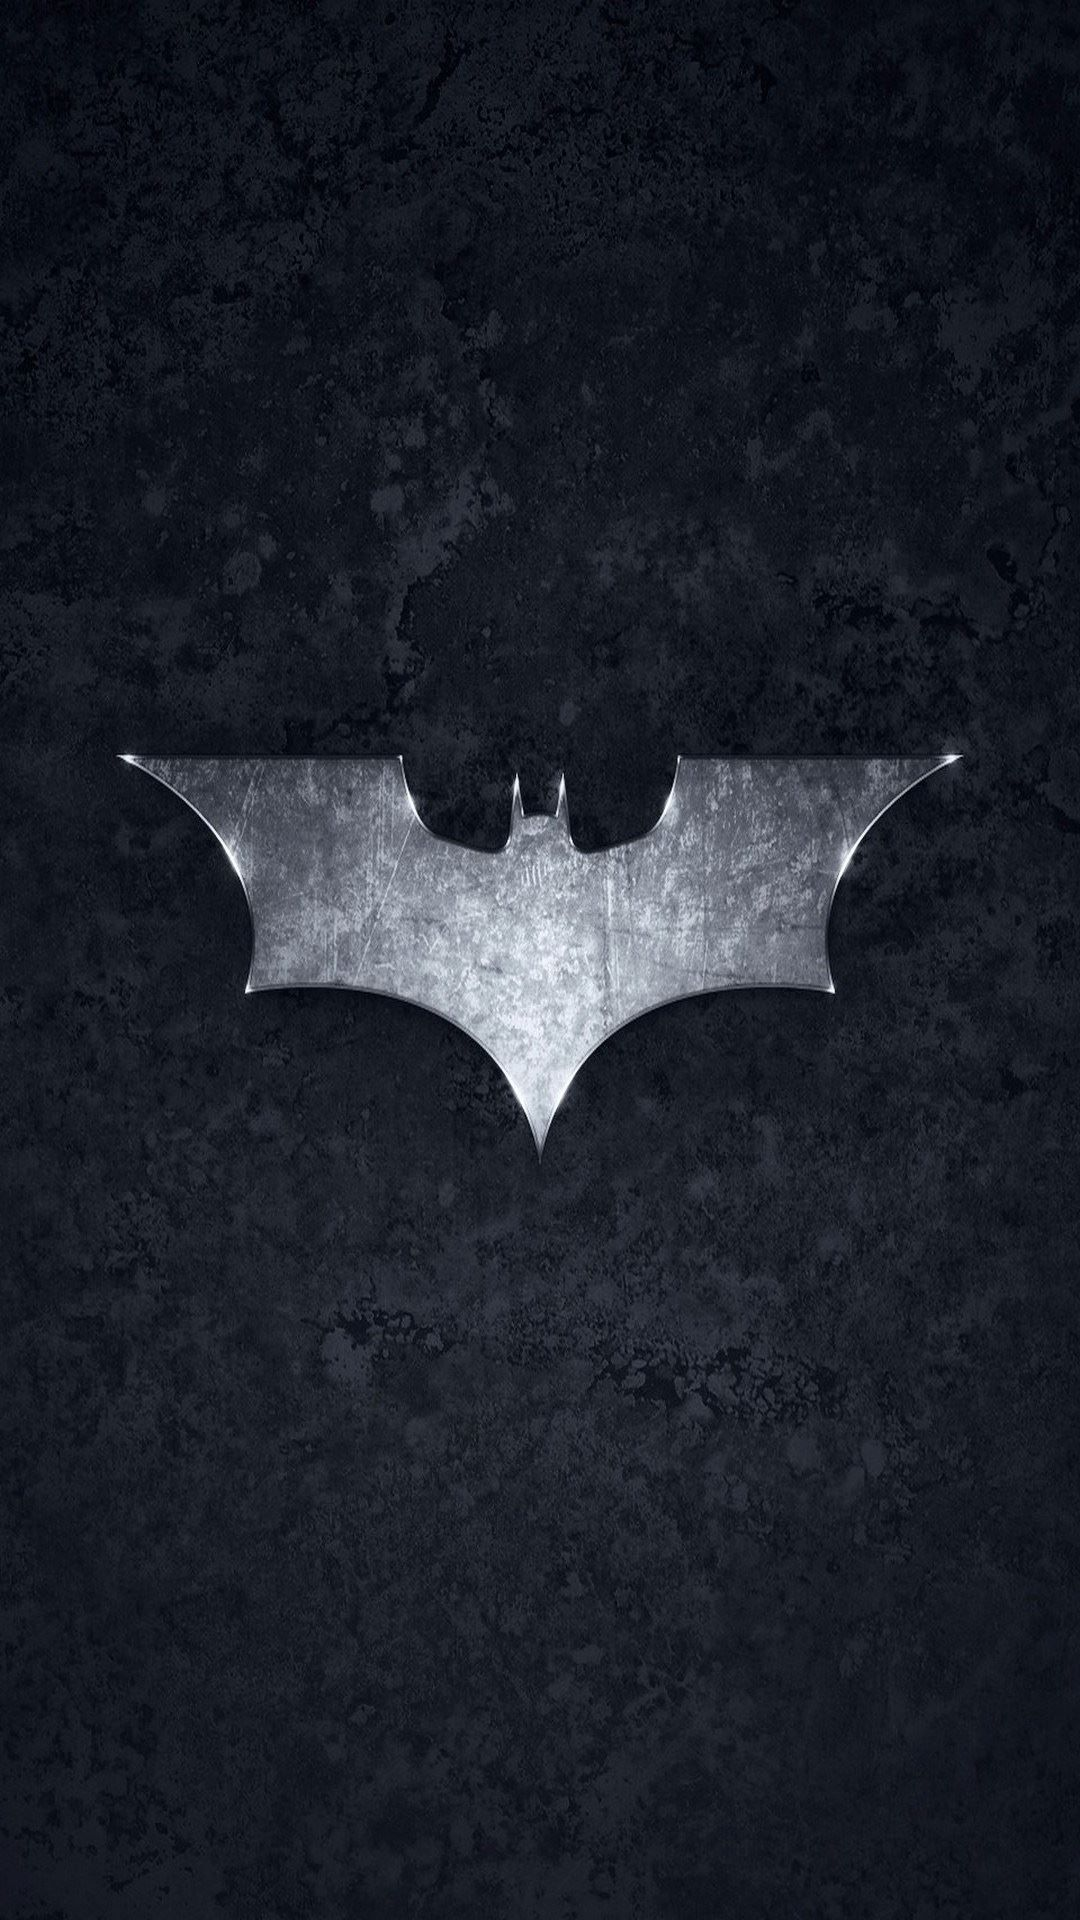 Pin By Jo On Mil Lock Screen Wallpaper Android Batman Wallpaper Batman Wallpaper Iphone